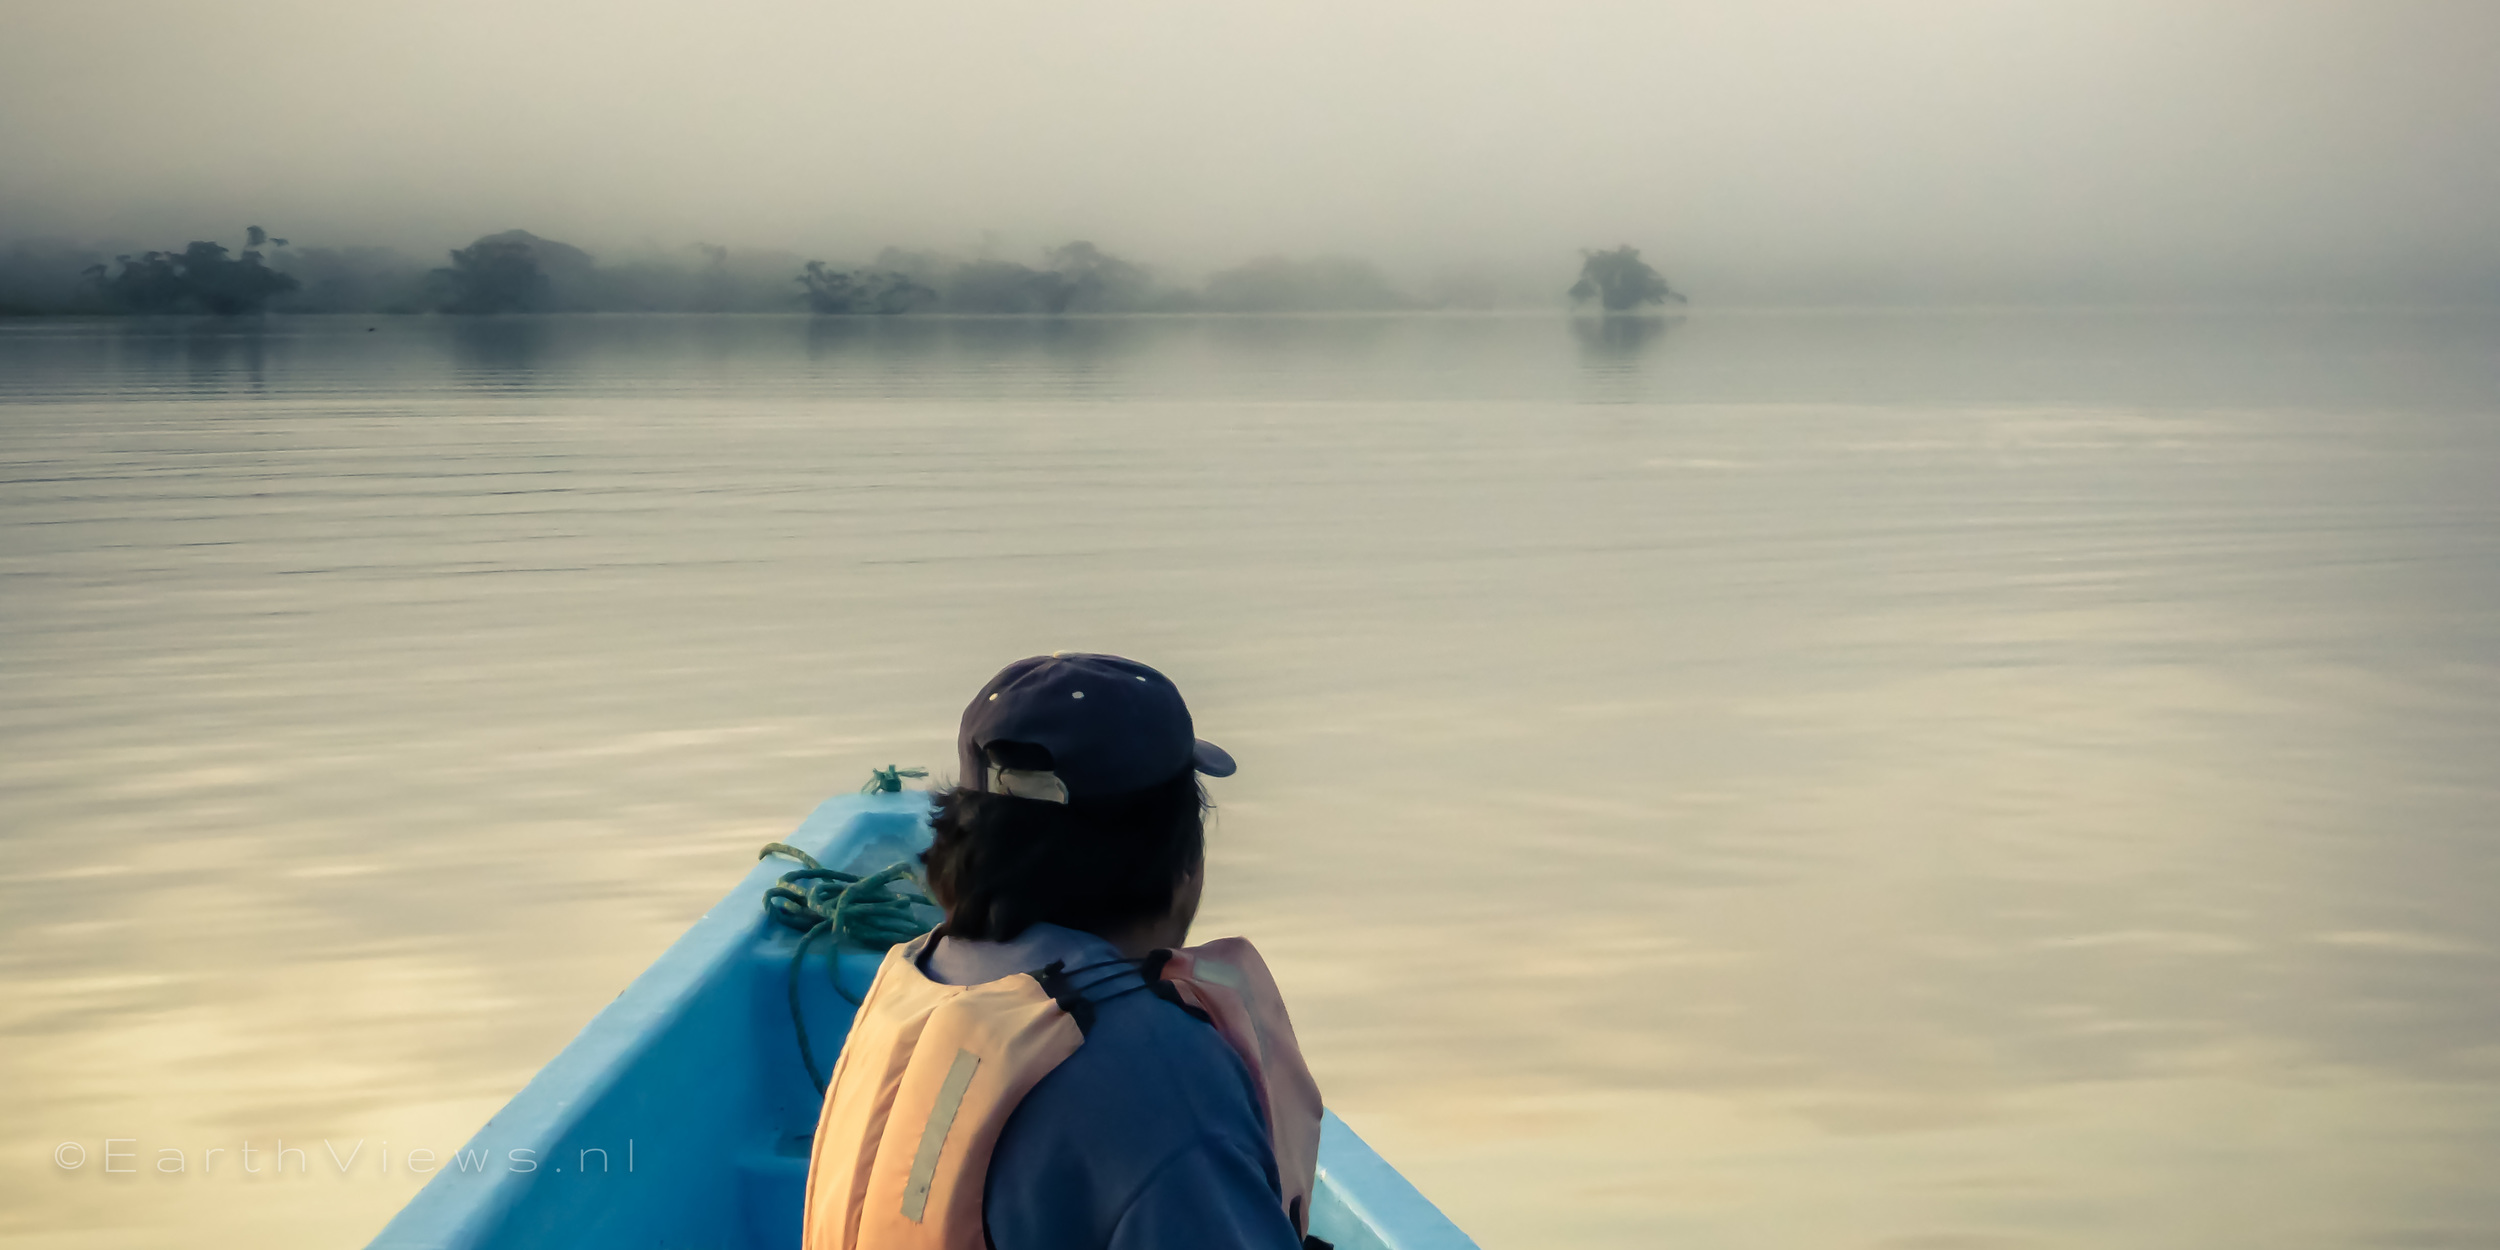 Luis searching for pink dolphins on our early morning boat trip.